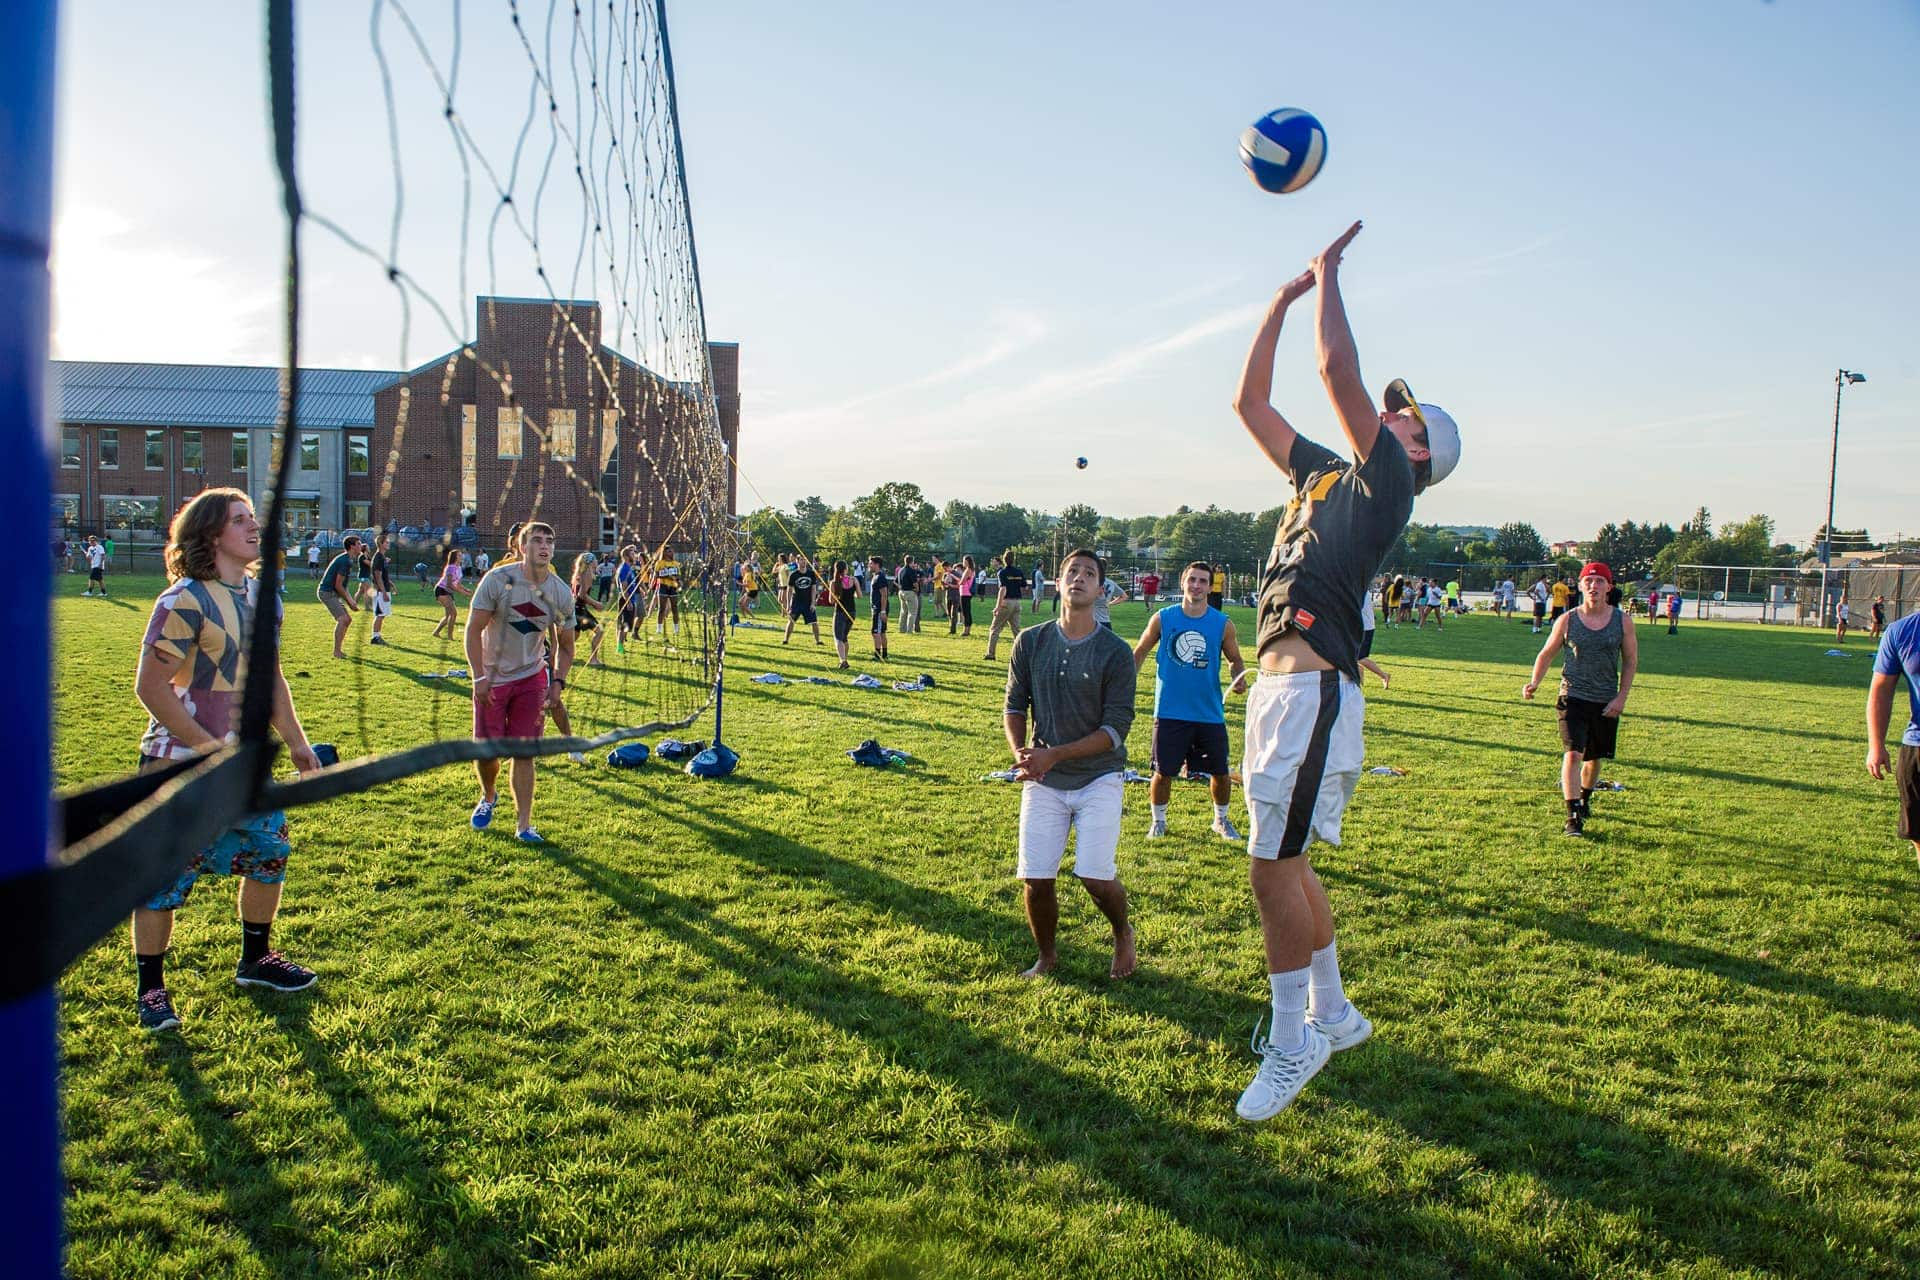 Researchers at WVU's College of Physical Activity and Sport Sciences believe that physical education standards in schools will promote lifelong physical activity.